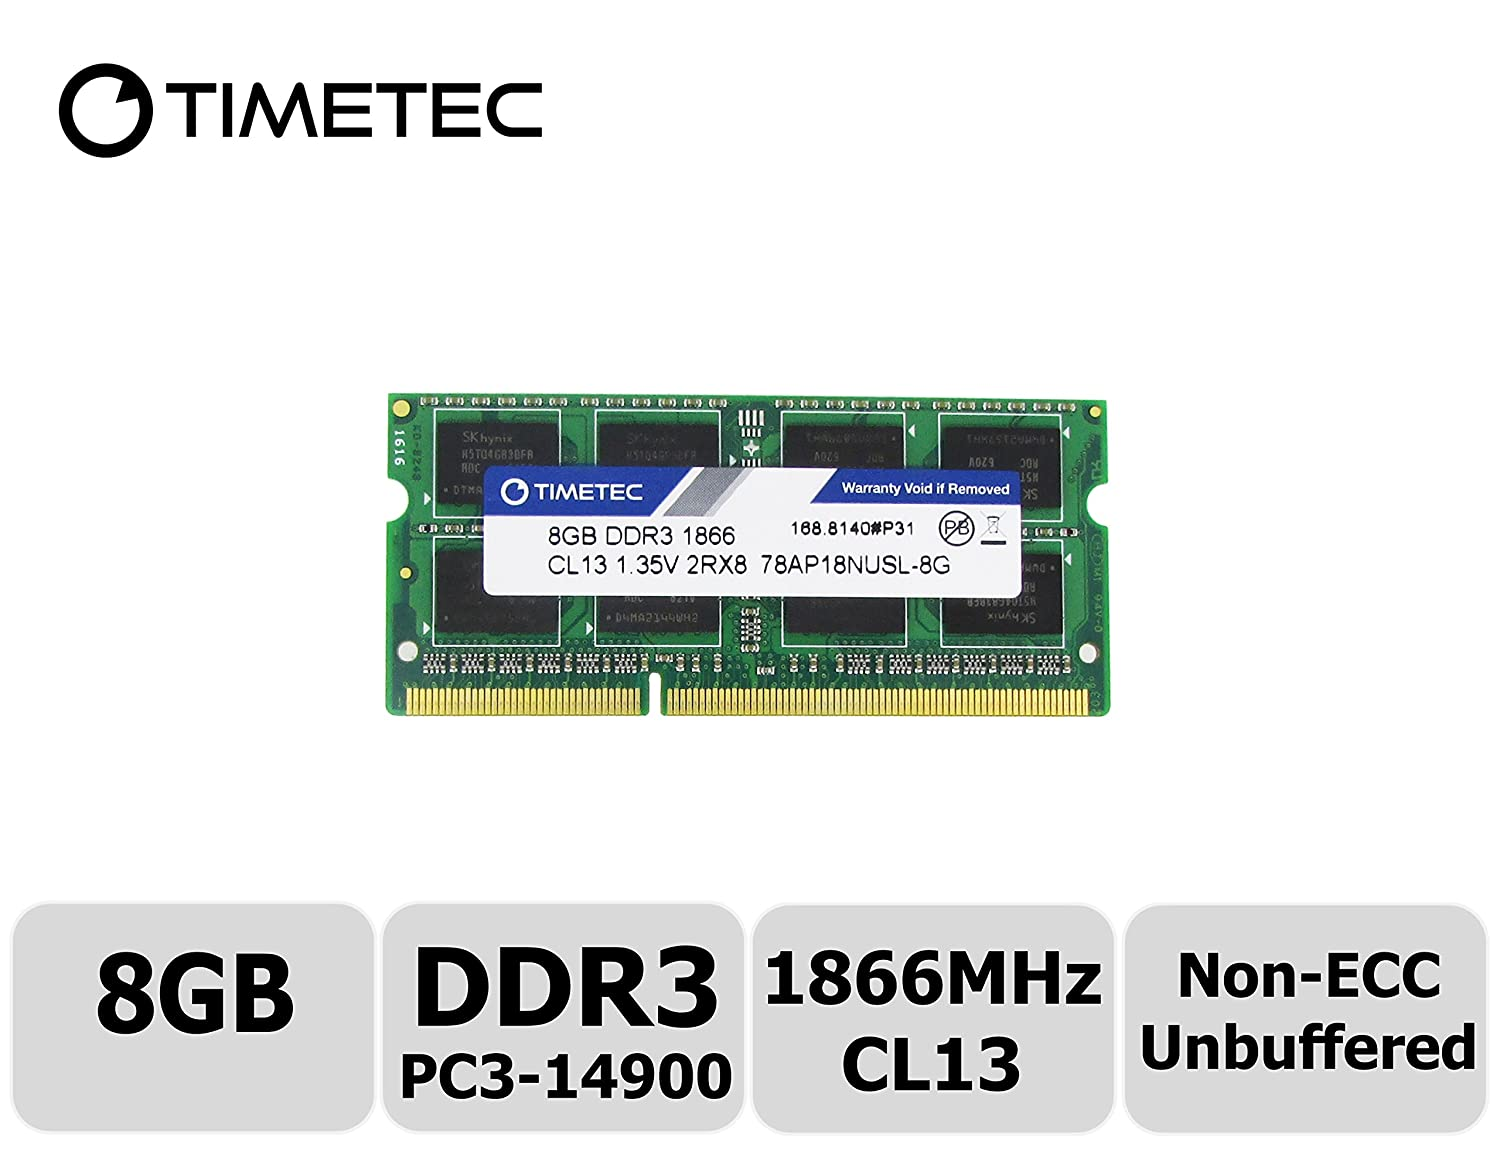 Timetec Compatible 8GB DDR3L 1866MHz PC3-14900 Unbuffered Non-ECC 1.35V CL13 2Rx8 Dual Rank 204 Pin SODIMM Memory RAM Module Upgrade (8GB)